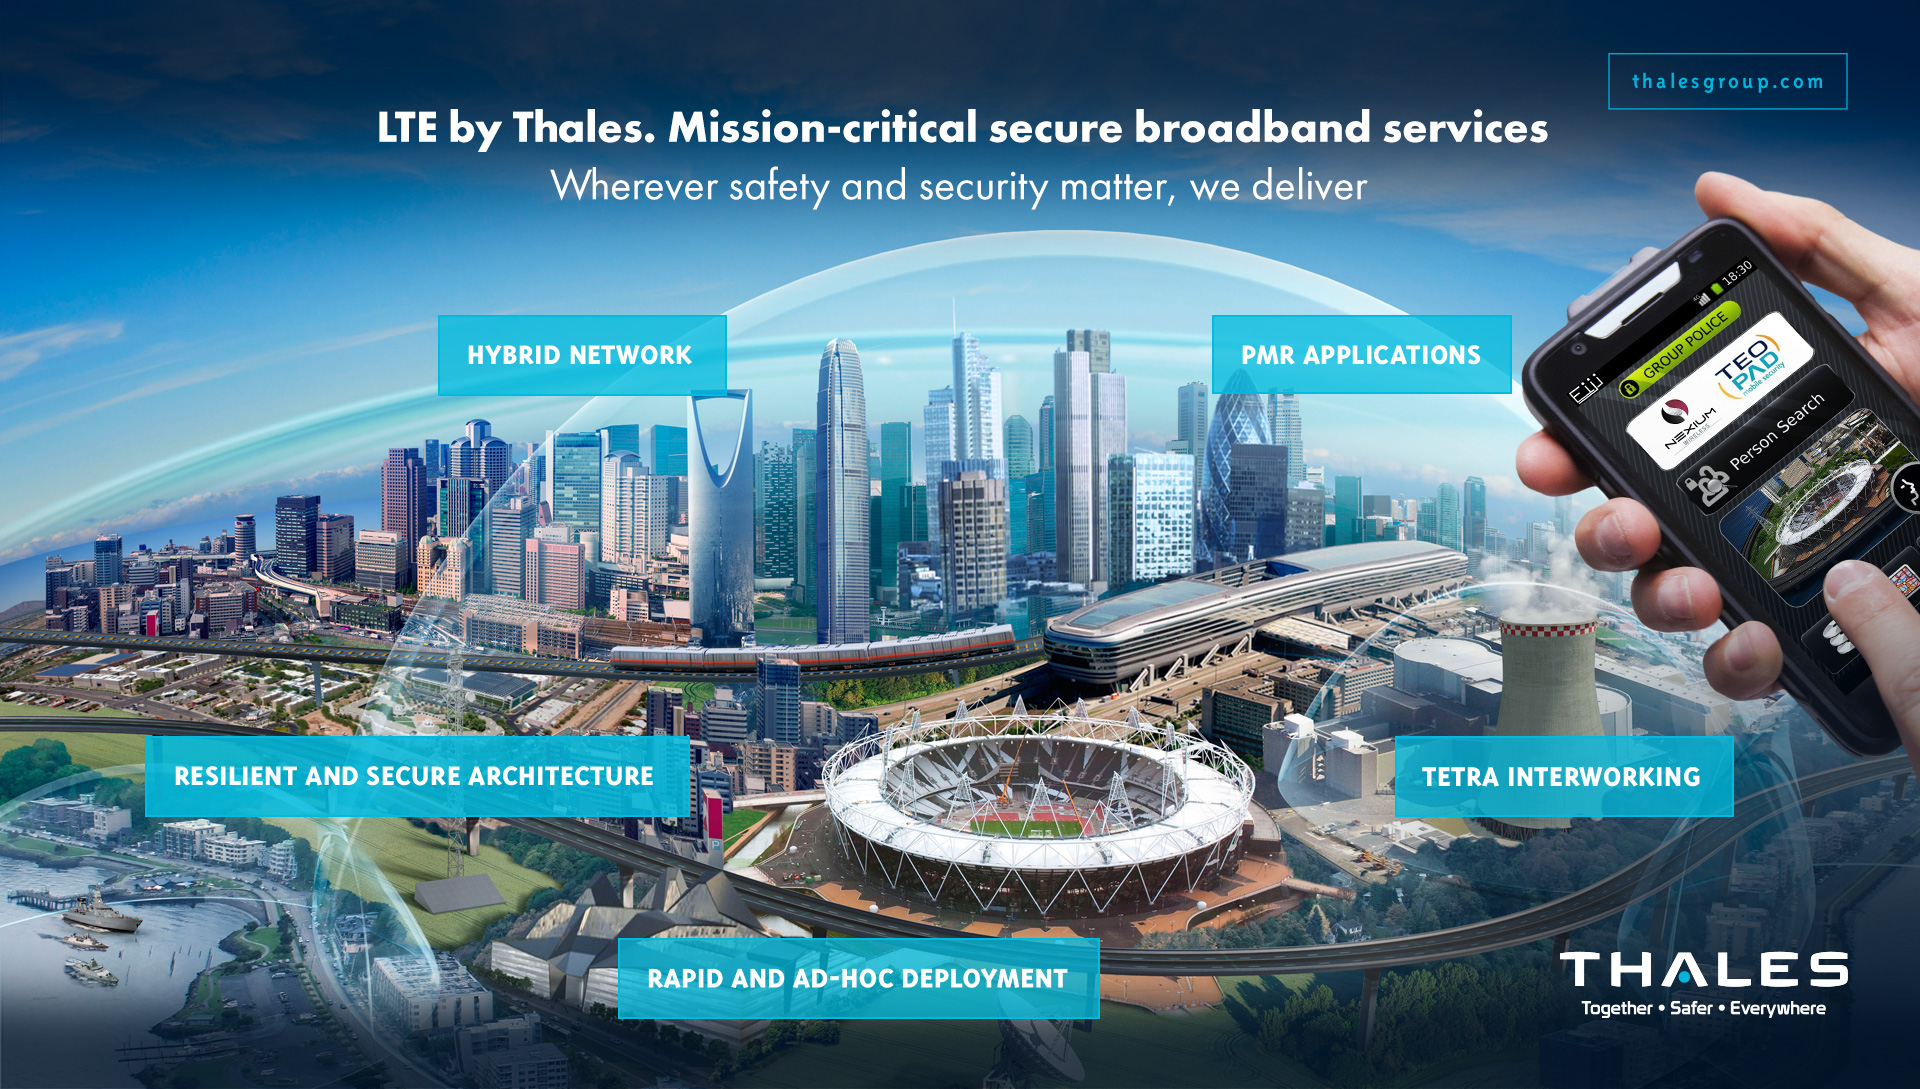 LTE by Thales - Thalesgroup